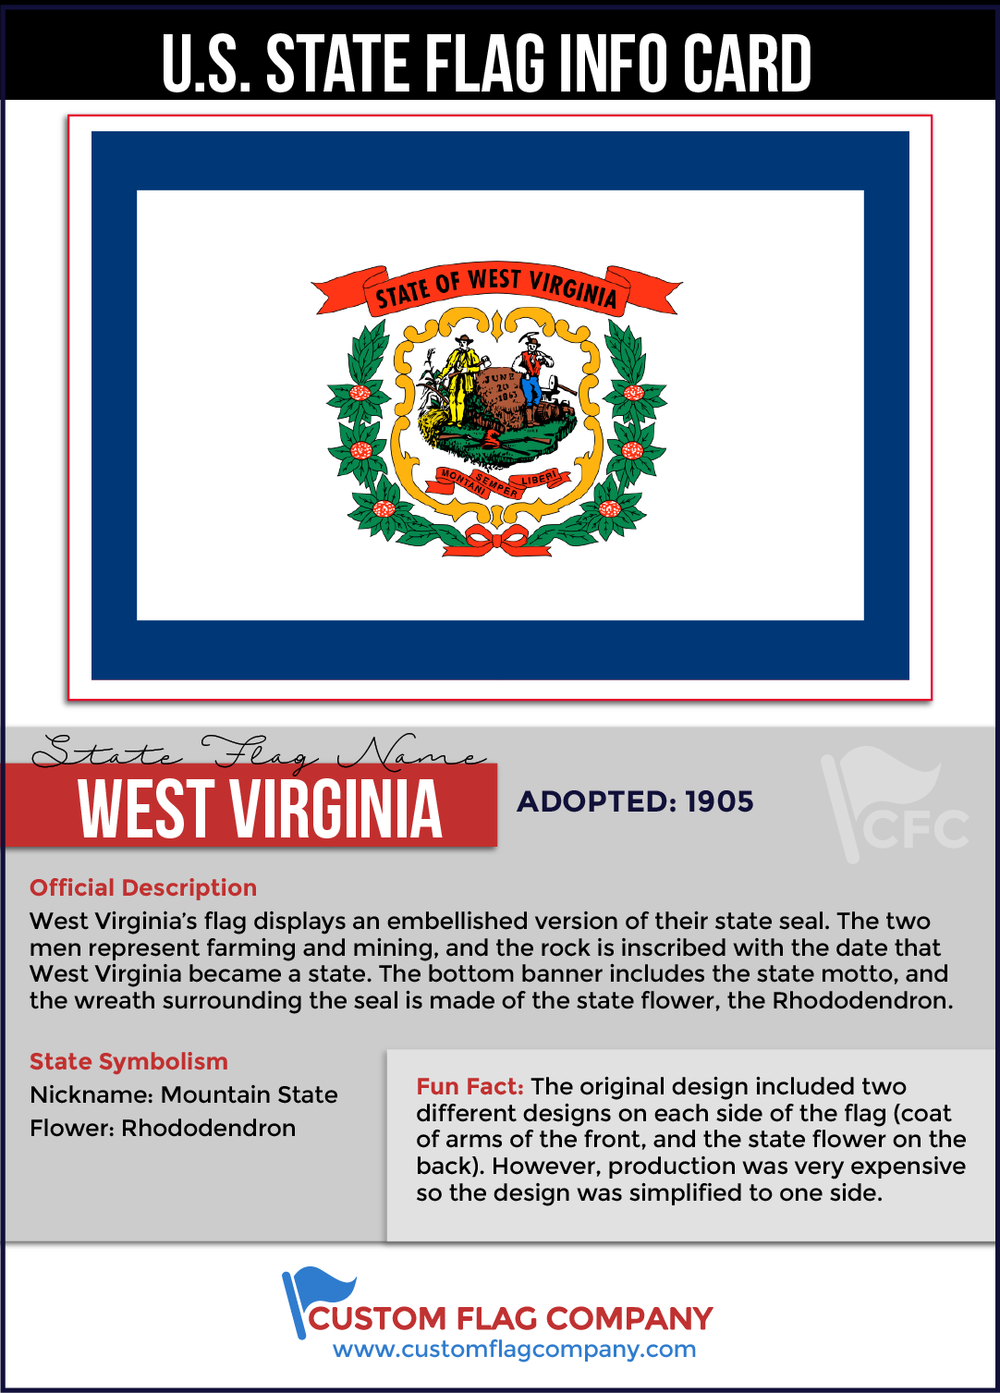 West Virginia State Information Card